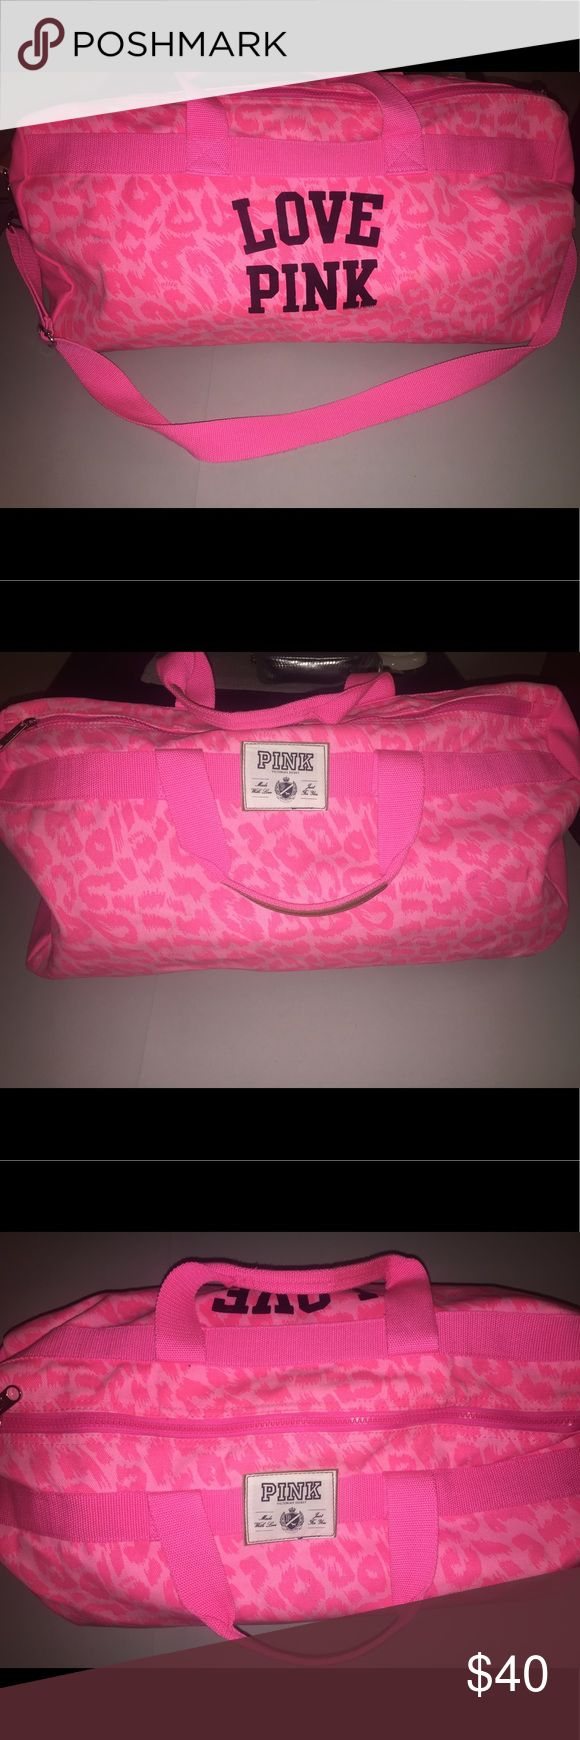 VS Pink Leopard Print Duffle Bag VS Pink Duffle Bag. Hot pink with leopard print. Used once for weekend get away, small enough to be a carry on for flight. Has some hardly noticeable marks, included pics. Really cute Bag! PINK Victoria's Secret Bags Travel Bags